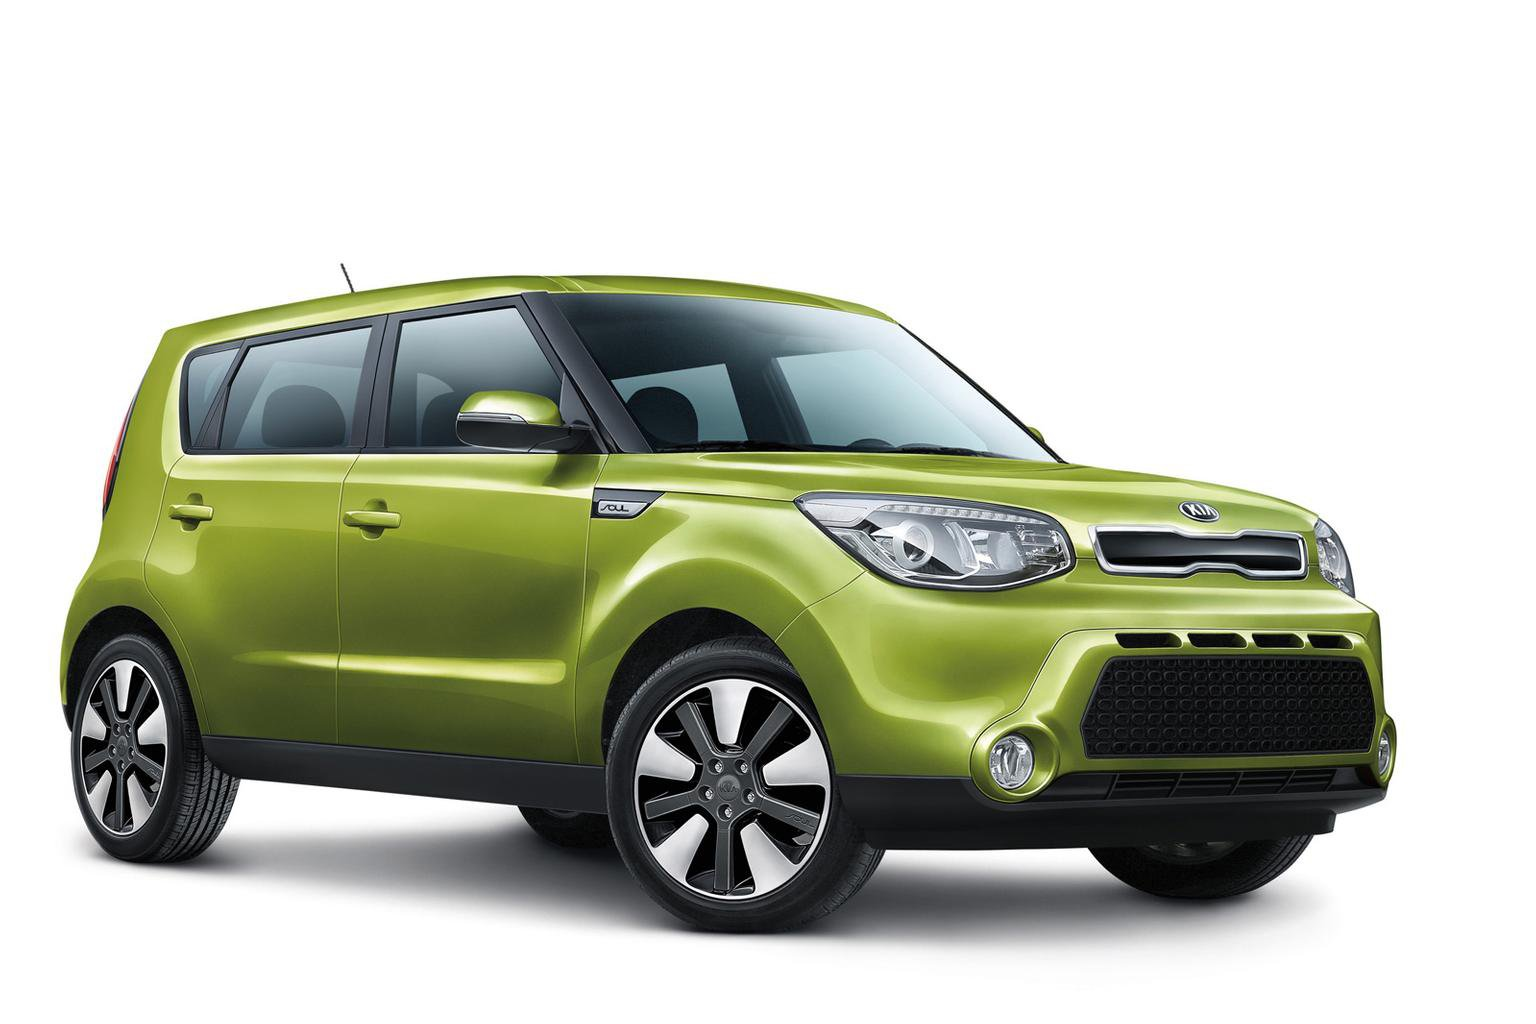 Electric Kia Soul confirmed for UK